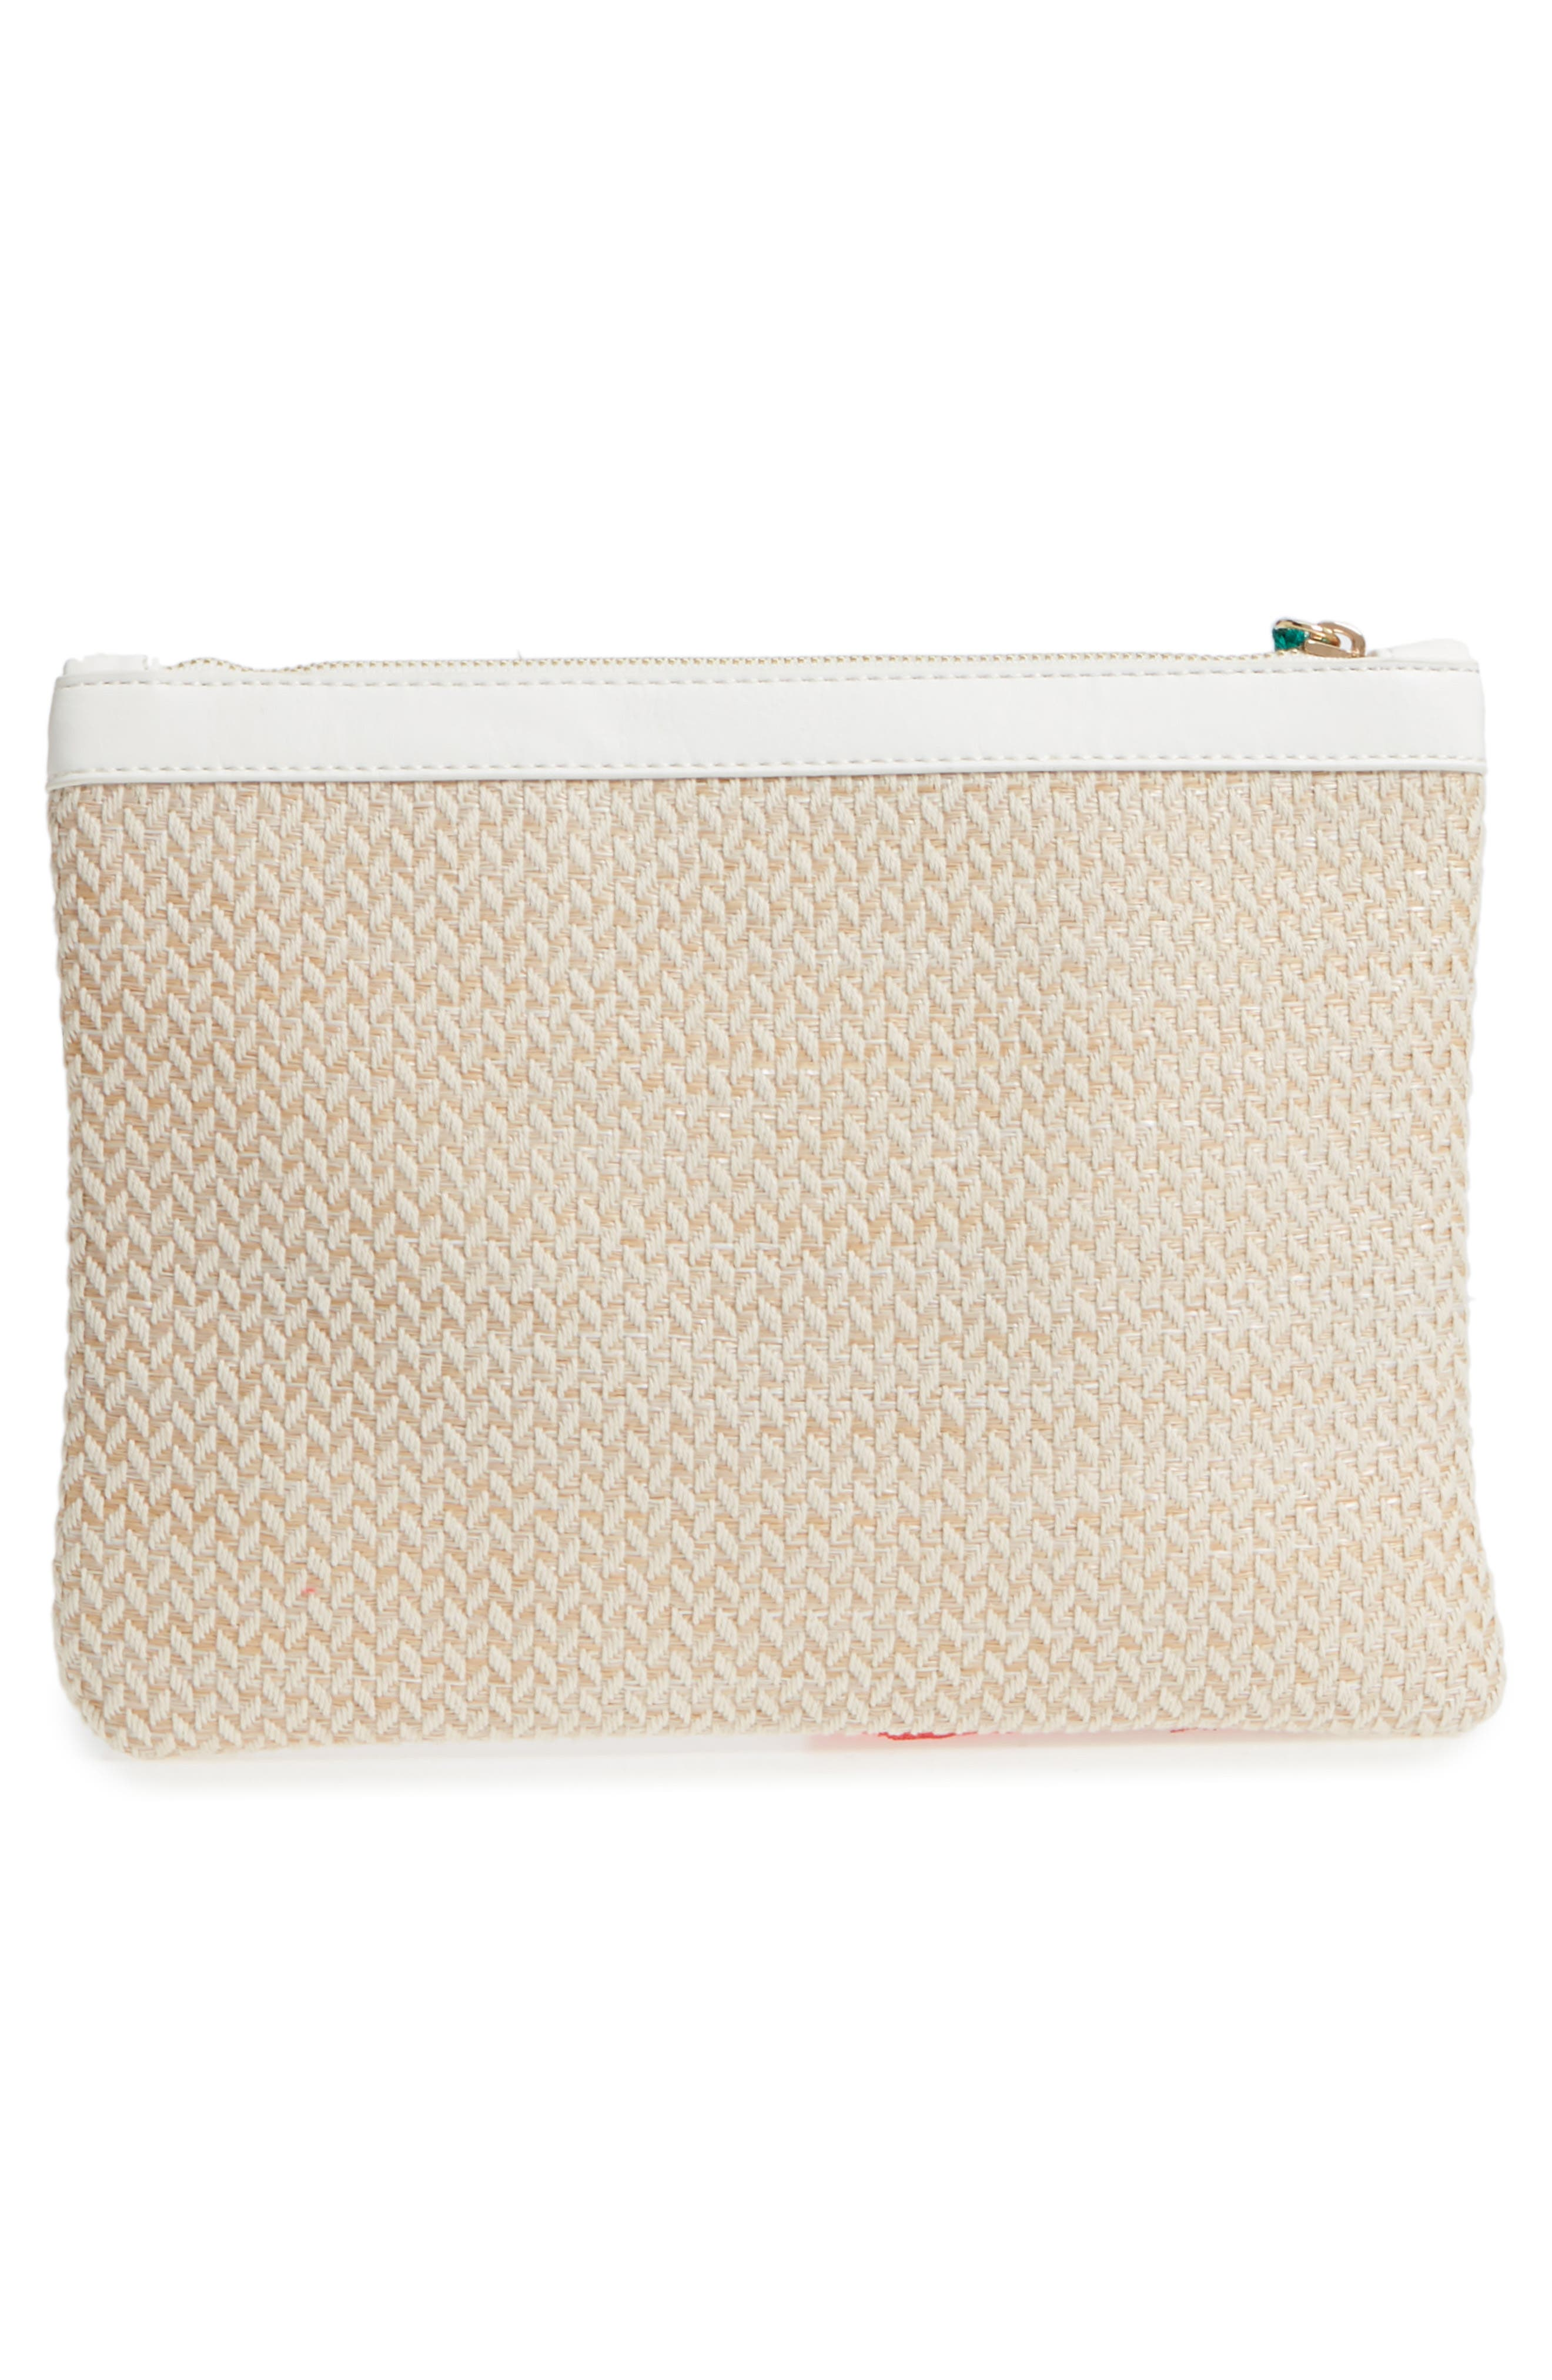 Tasseled Fabric Zip Pouch,                             Alternate thumbnail 3, color,                             101